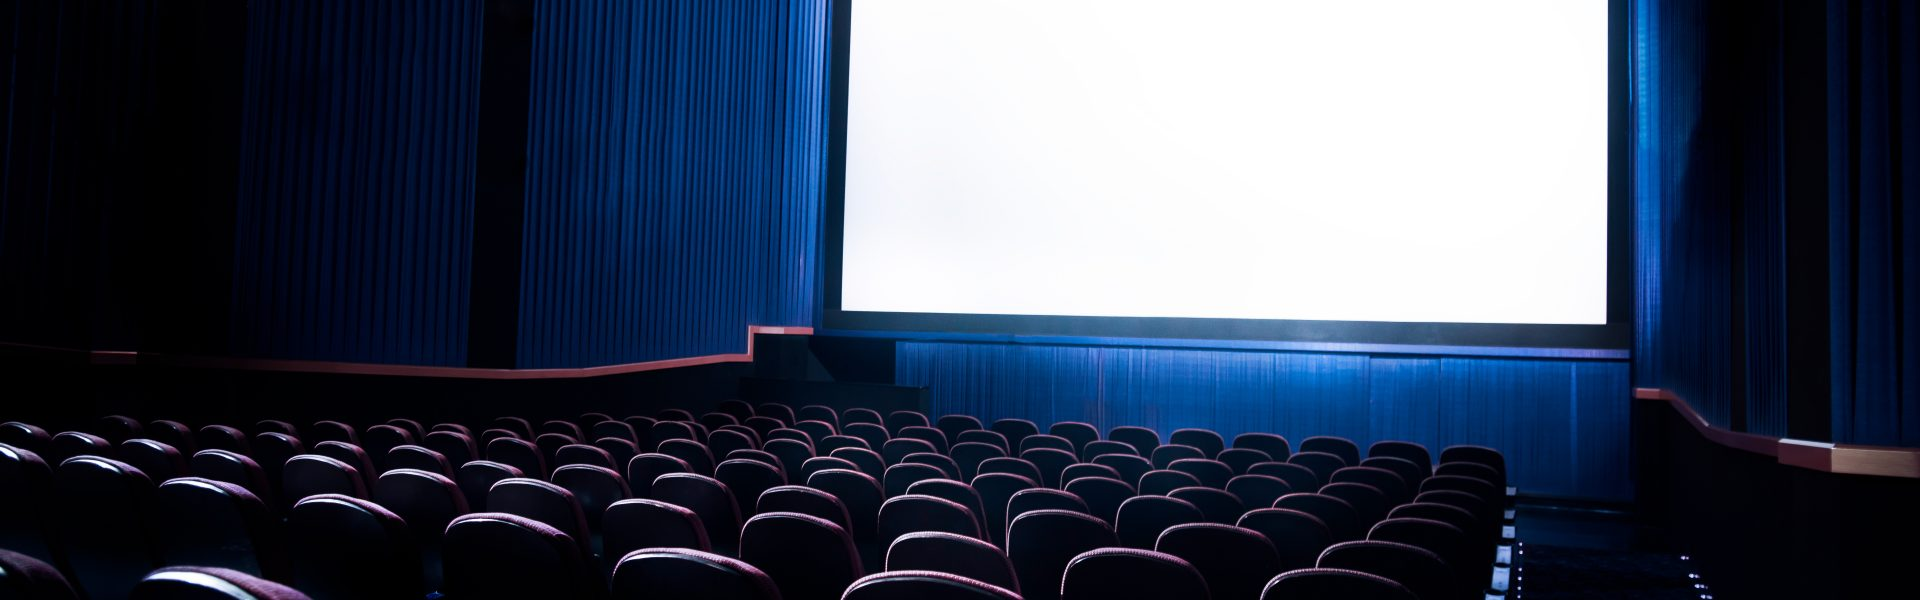 Coolest movie theater trends